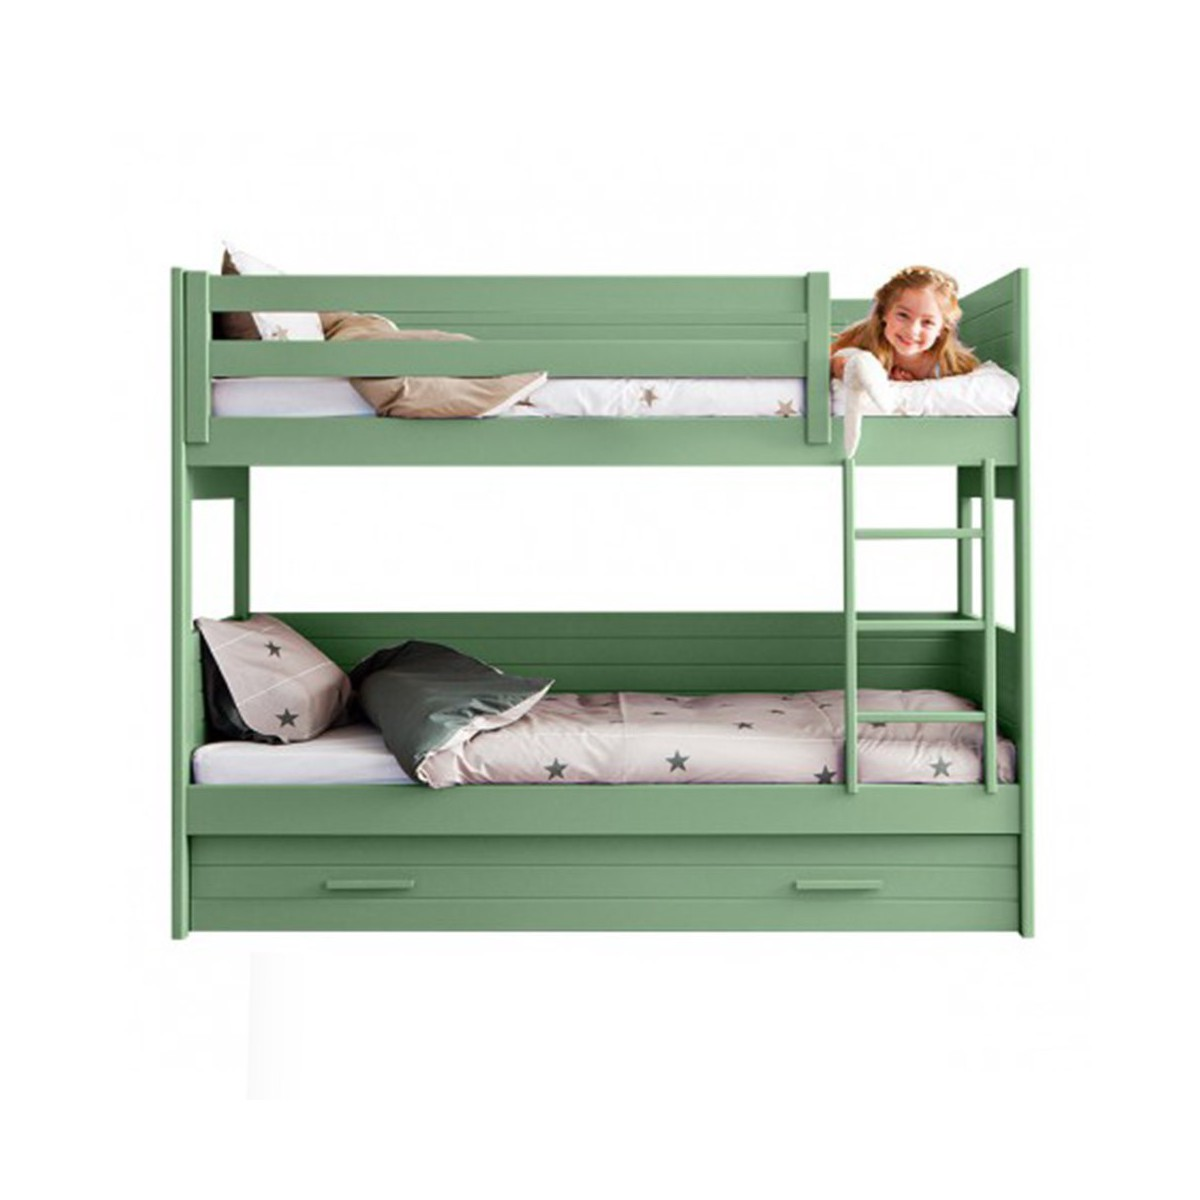 Lit superpos double couchage pour enfants junior cometa asoral - Lit superpose banquette ...